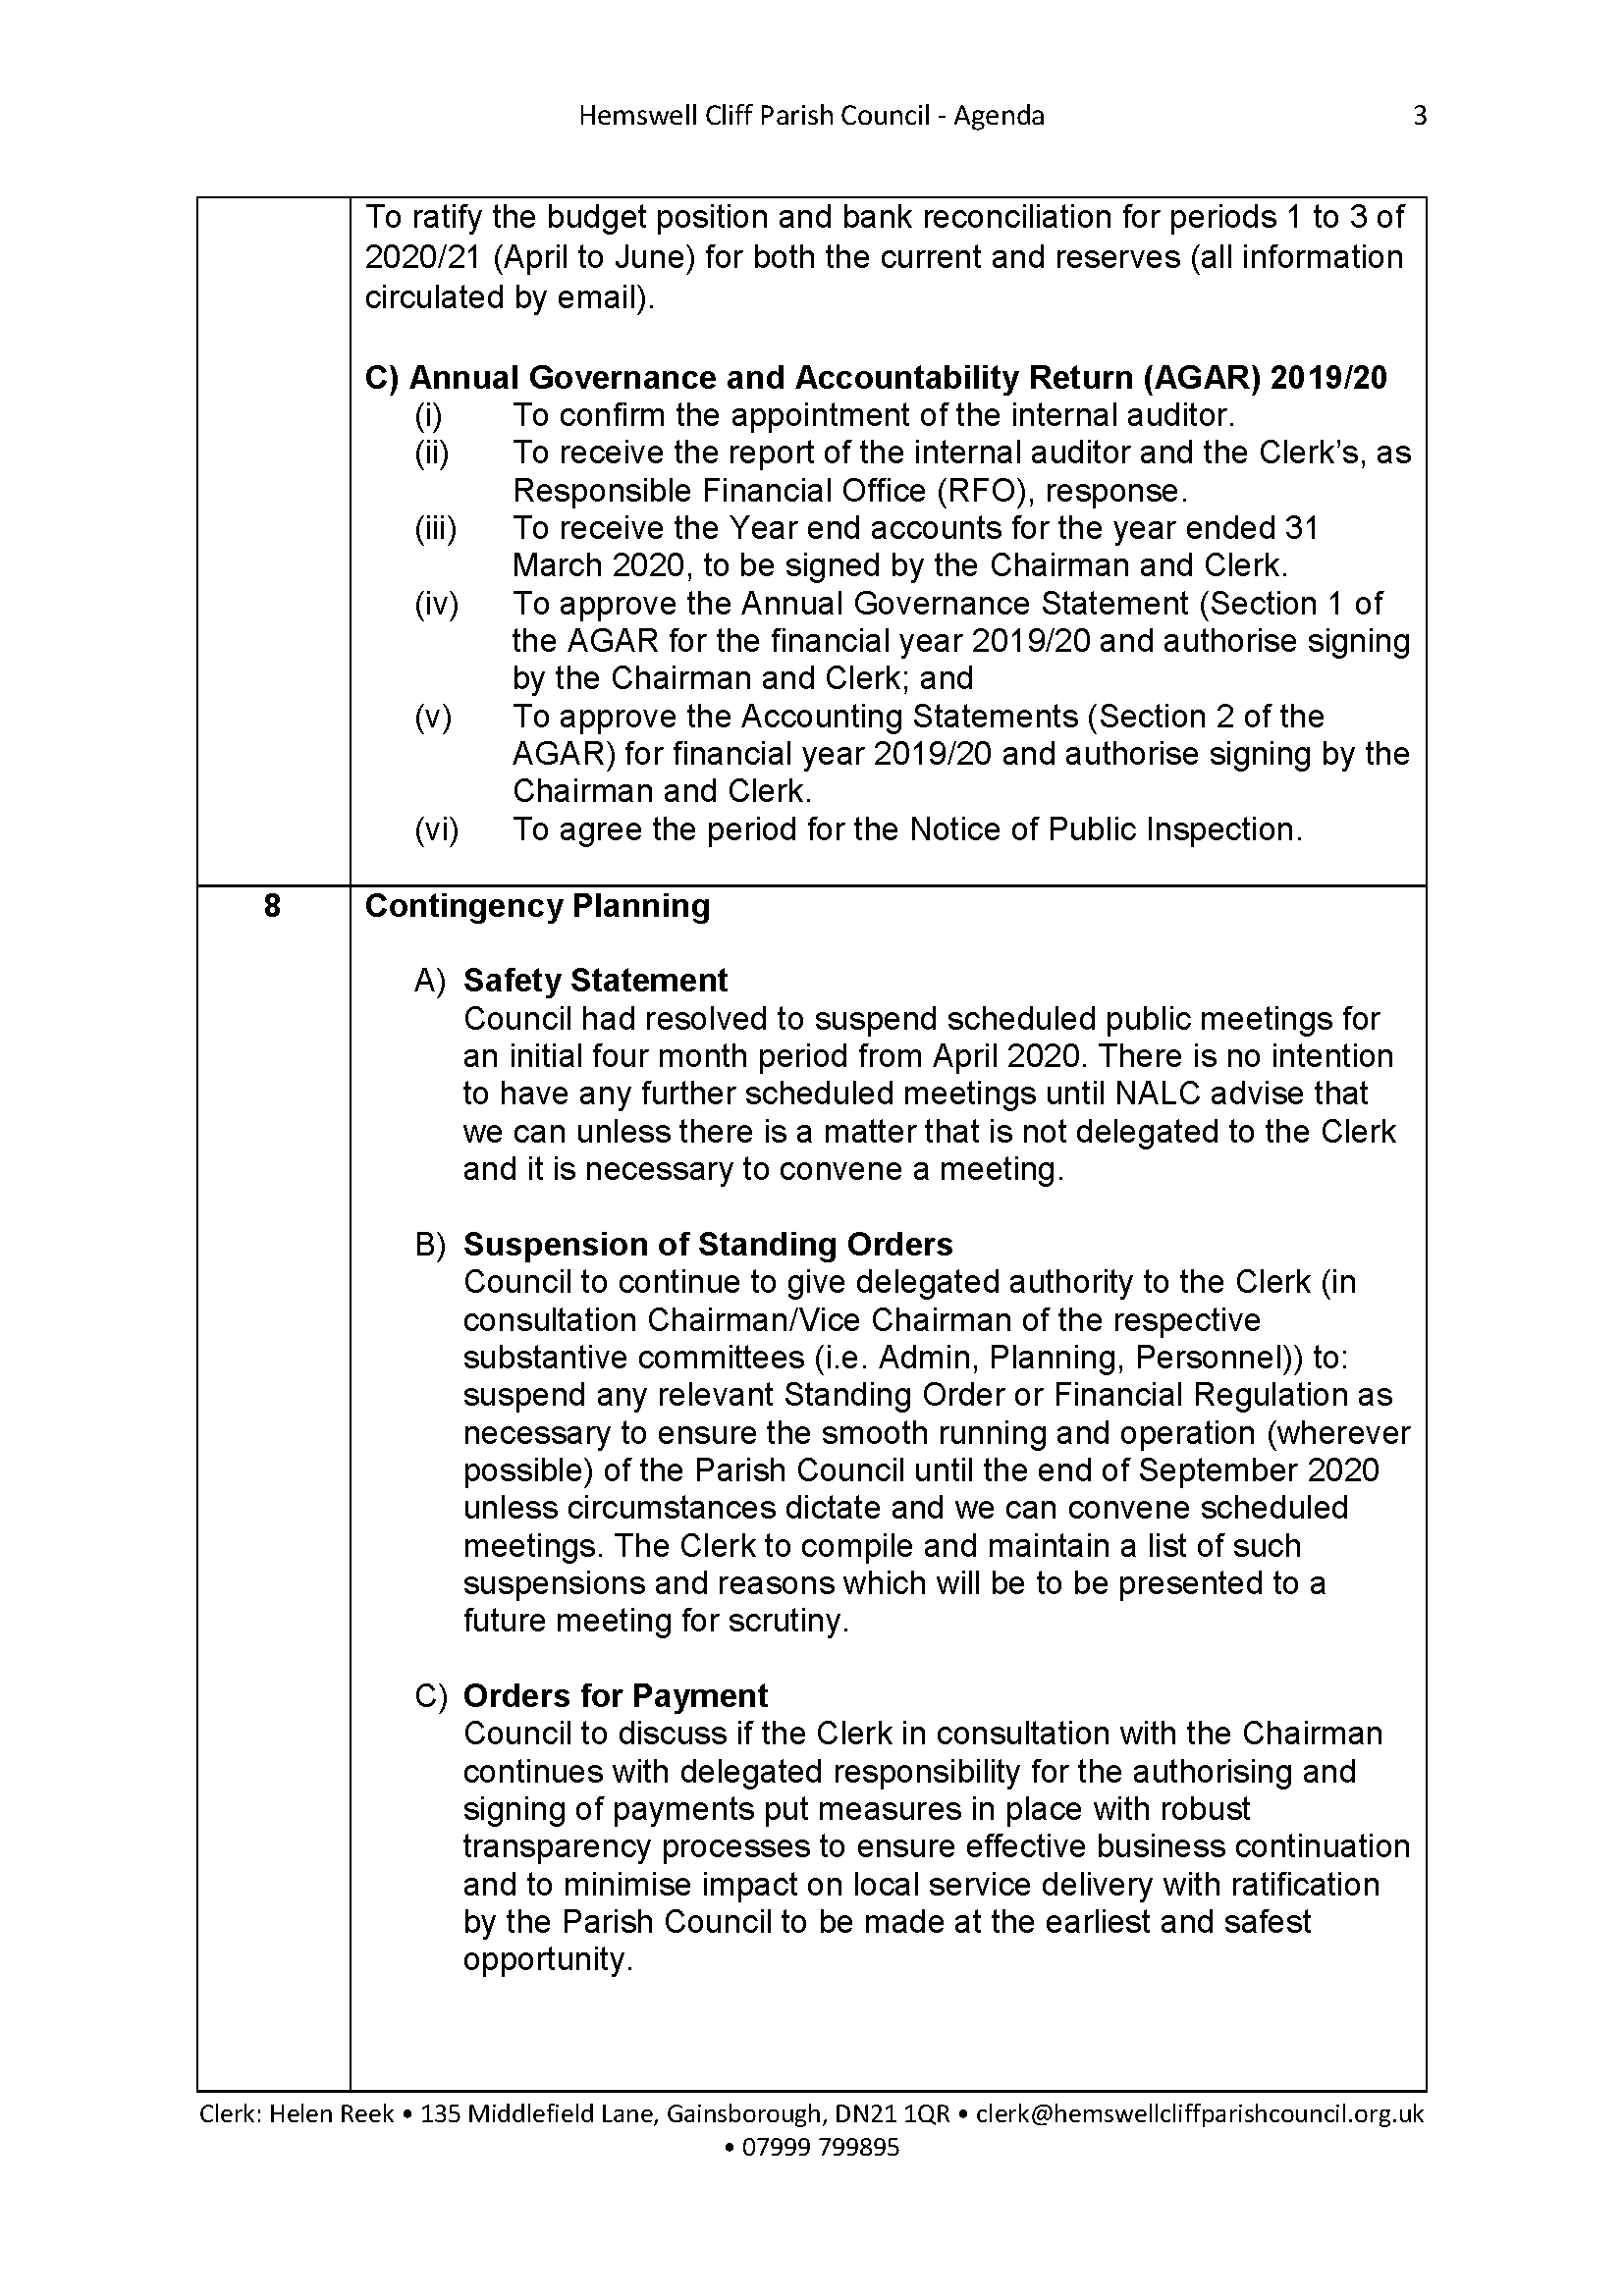 HCPC_Agenda_27.07.20_Page_3.png